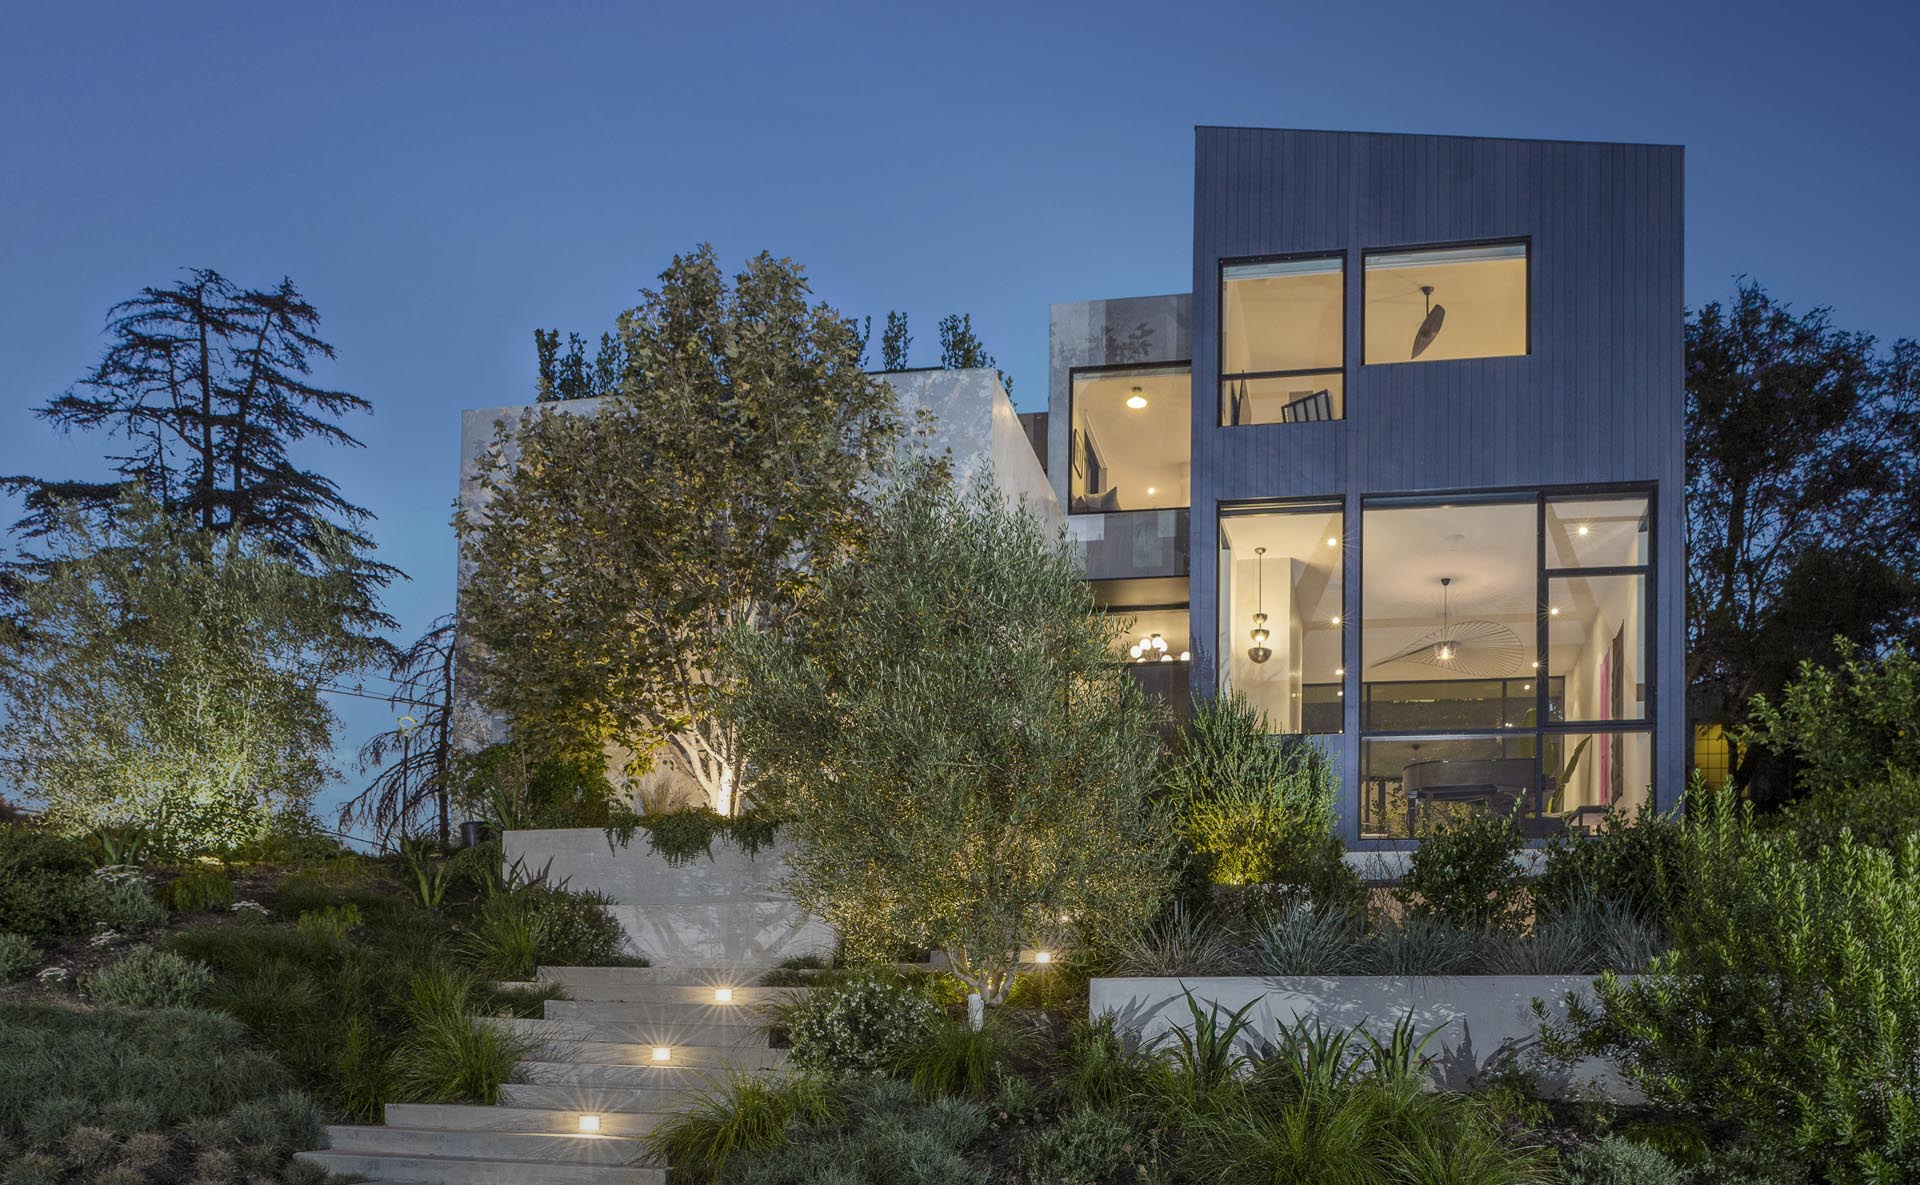 Mature landscaping is separated by concrete stairs that lead up to the house, and at night, lighting creates a guided path.